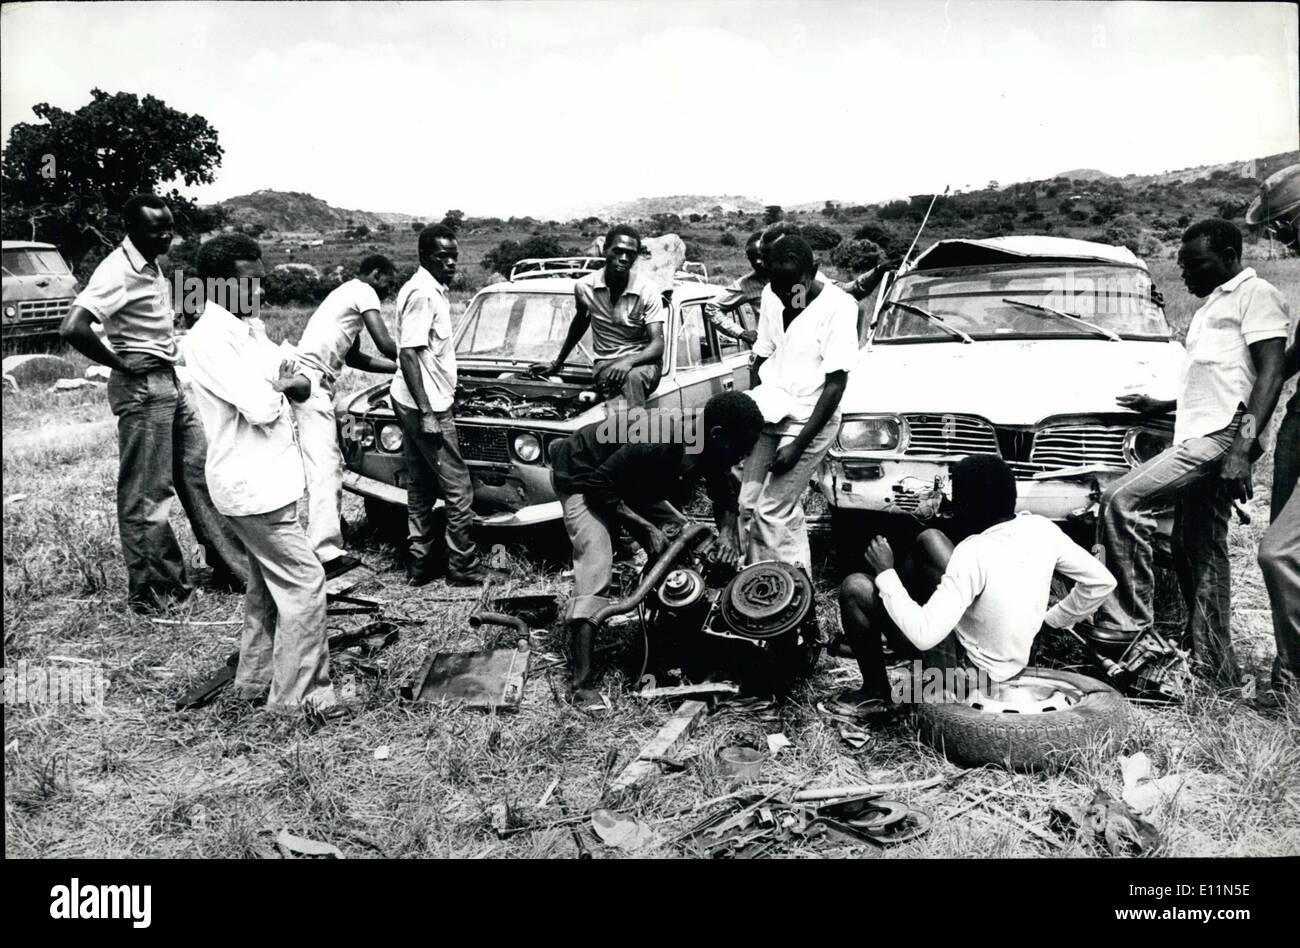 Jun. 06, 1979 - Kaya Southern Sudan: in a refugee camp at the border post of Kaya in Southern Sudan, here several of former Amin's soldiers repairing cars they used to flee across the borders. Credits: Camerapix - Stock Image